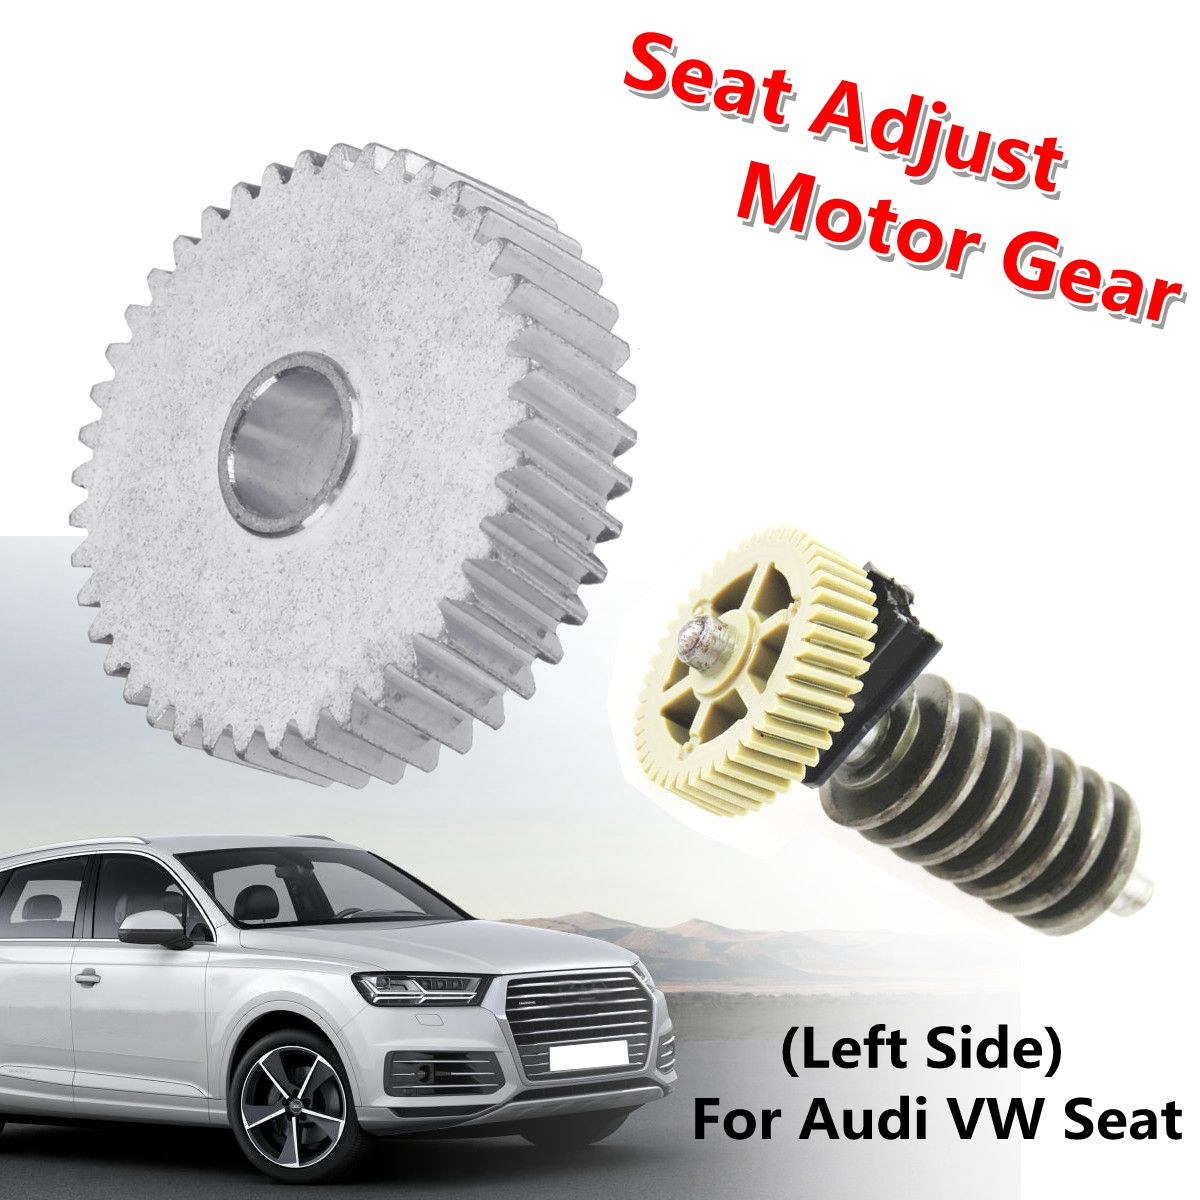 Car Seat Adjust Motor Wheel Gear Left Side For Audi A4 A6 Q7 for VW Touareg Seat Exeo 7L0 959 111 4F0 959 111 4F0959111 ...